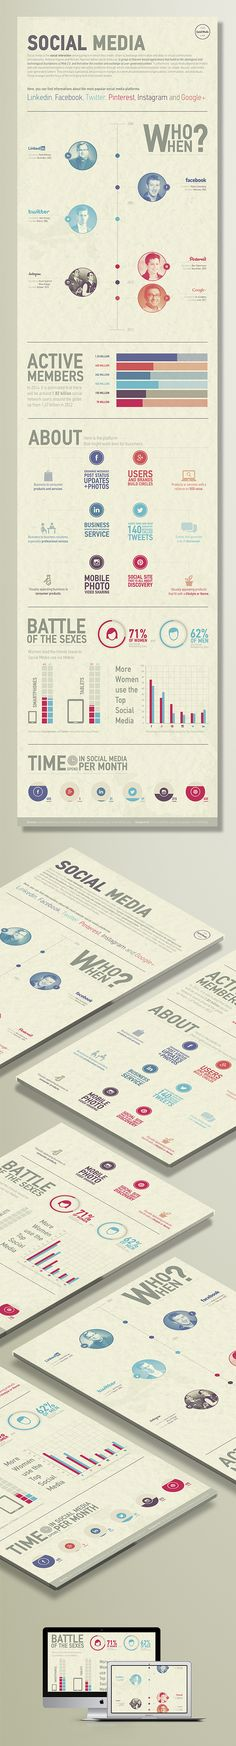 An infographic designed for The #SocialMedia Lab.